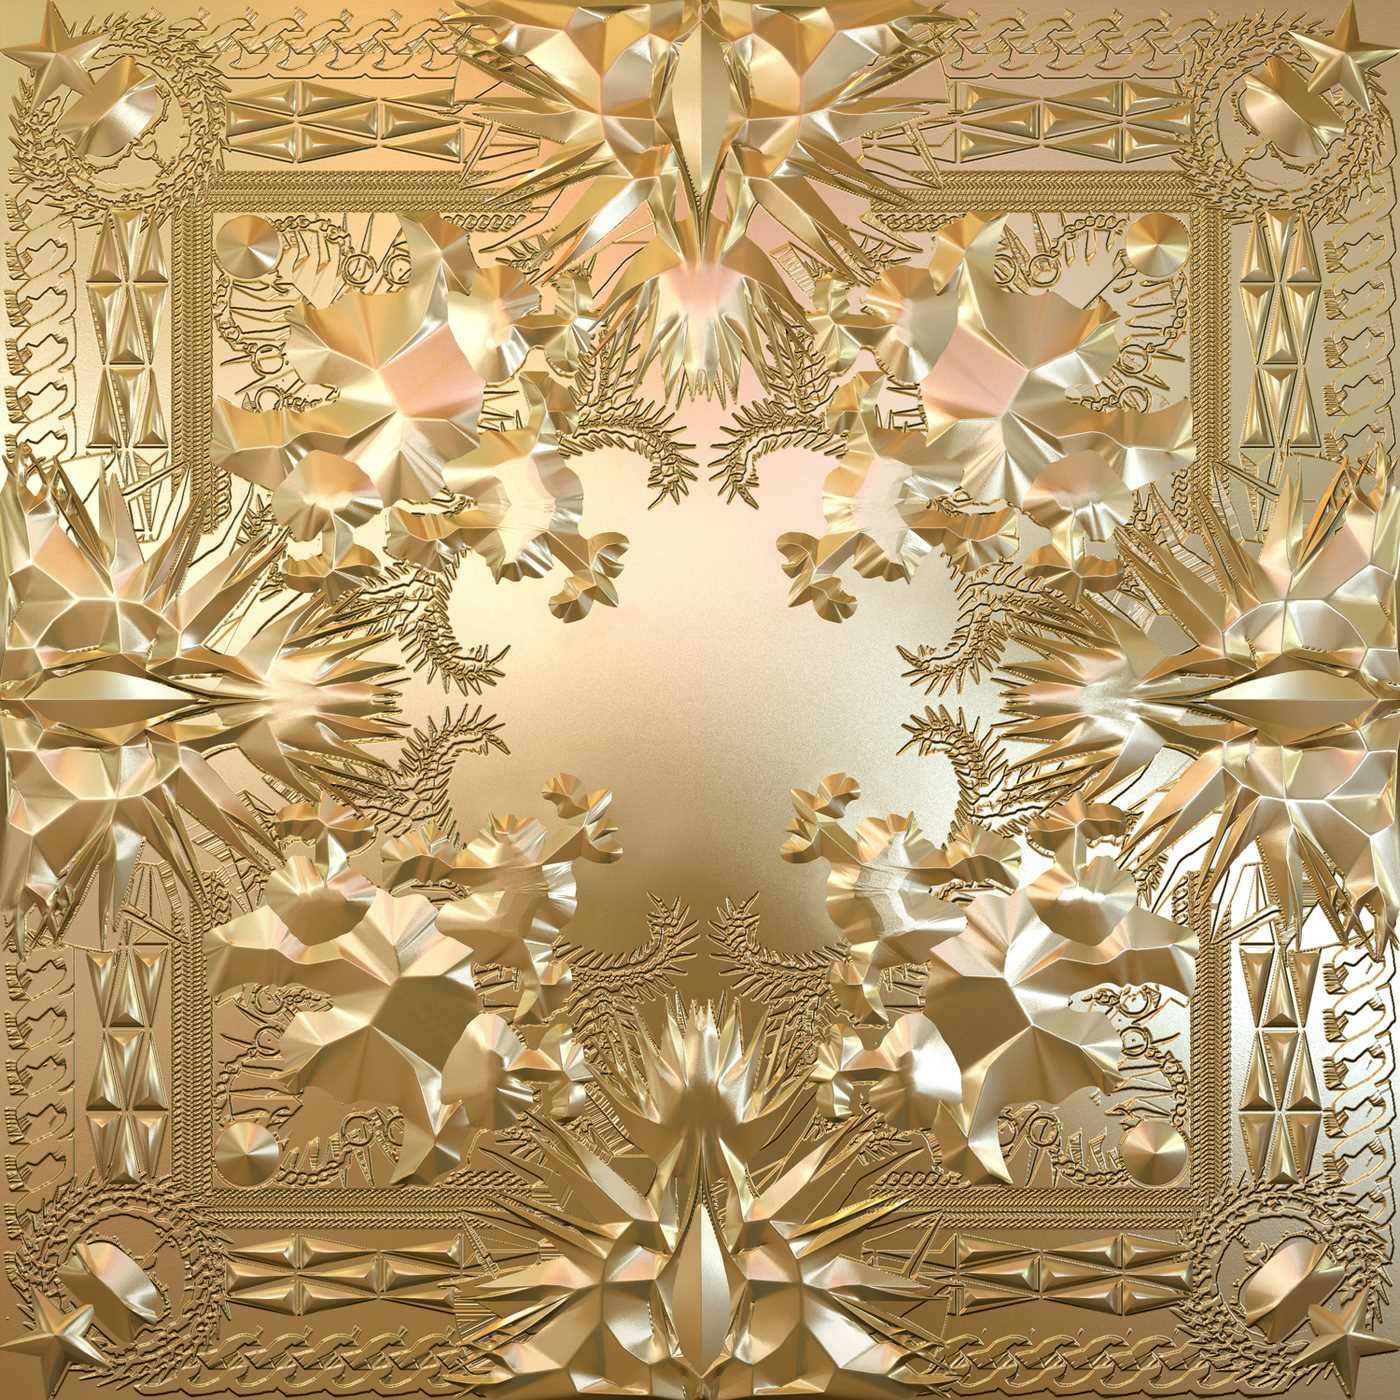 CD : Jay-Z - Watch the Throne [Explicit Content]